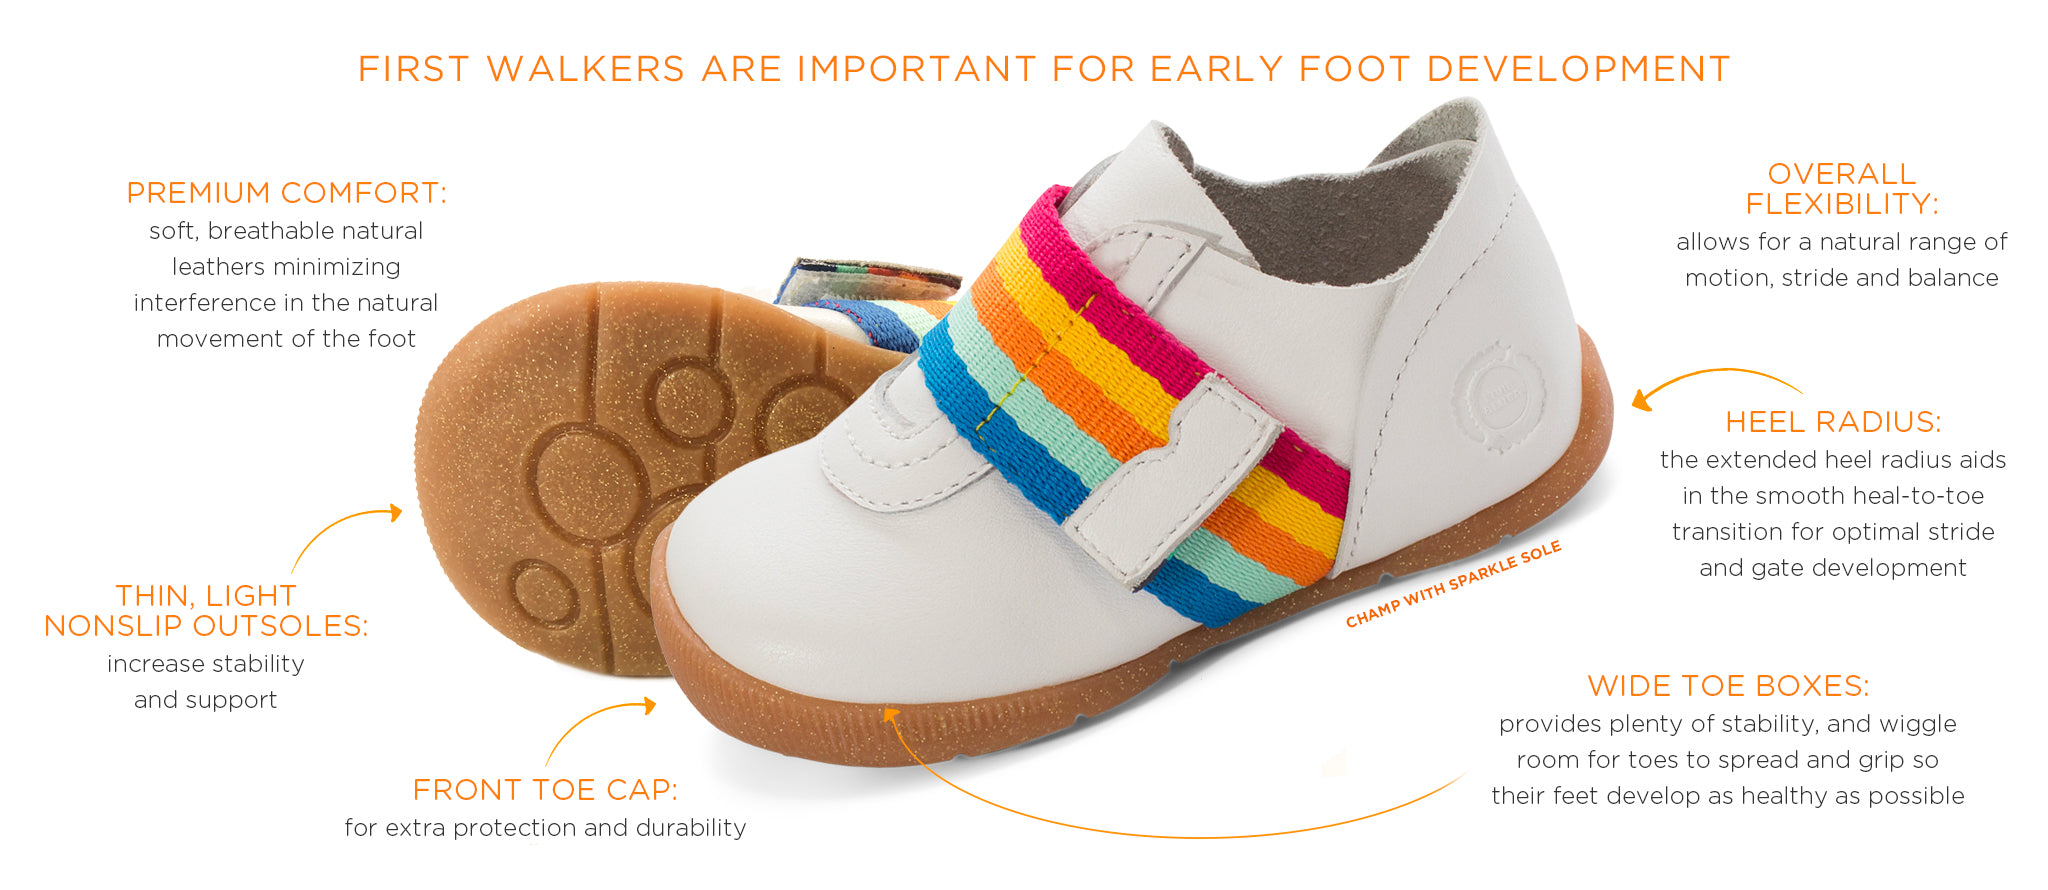 First Walkers For Babies and Toddlers